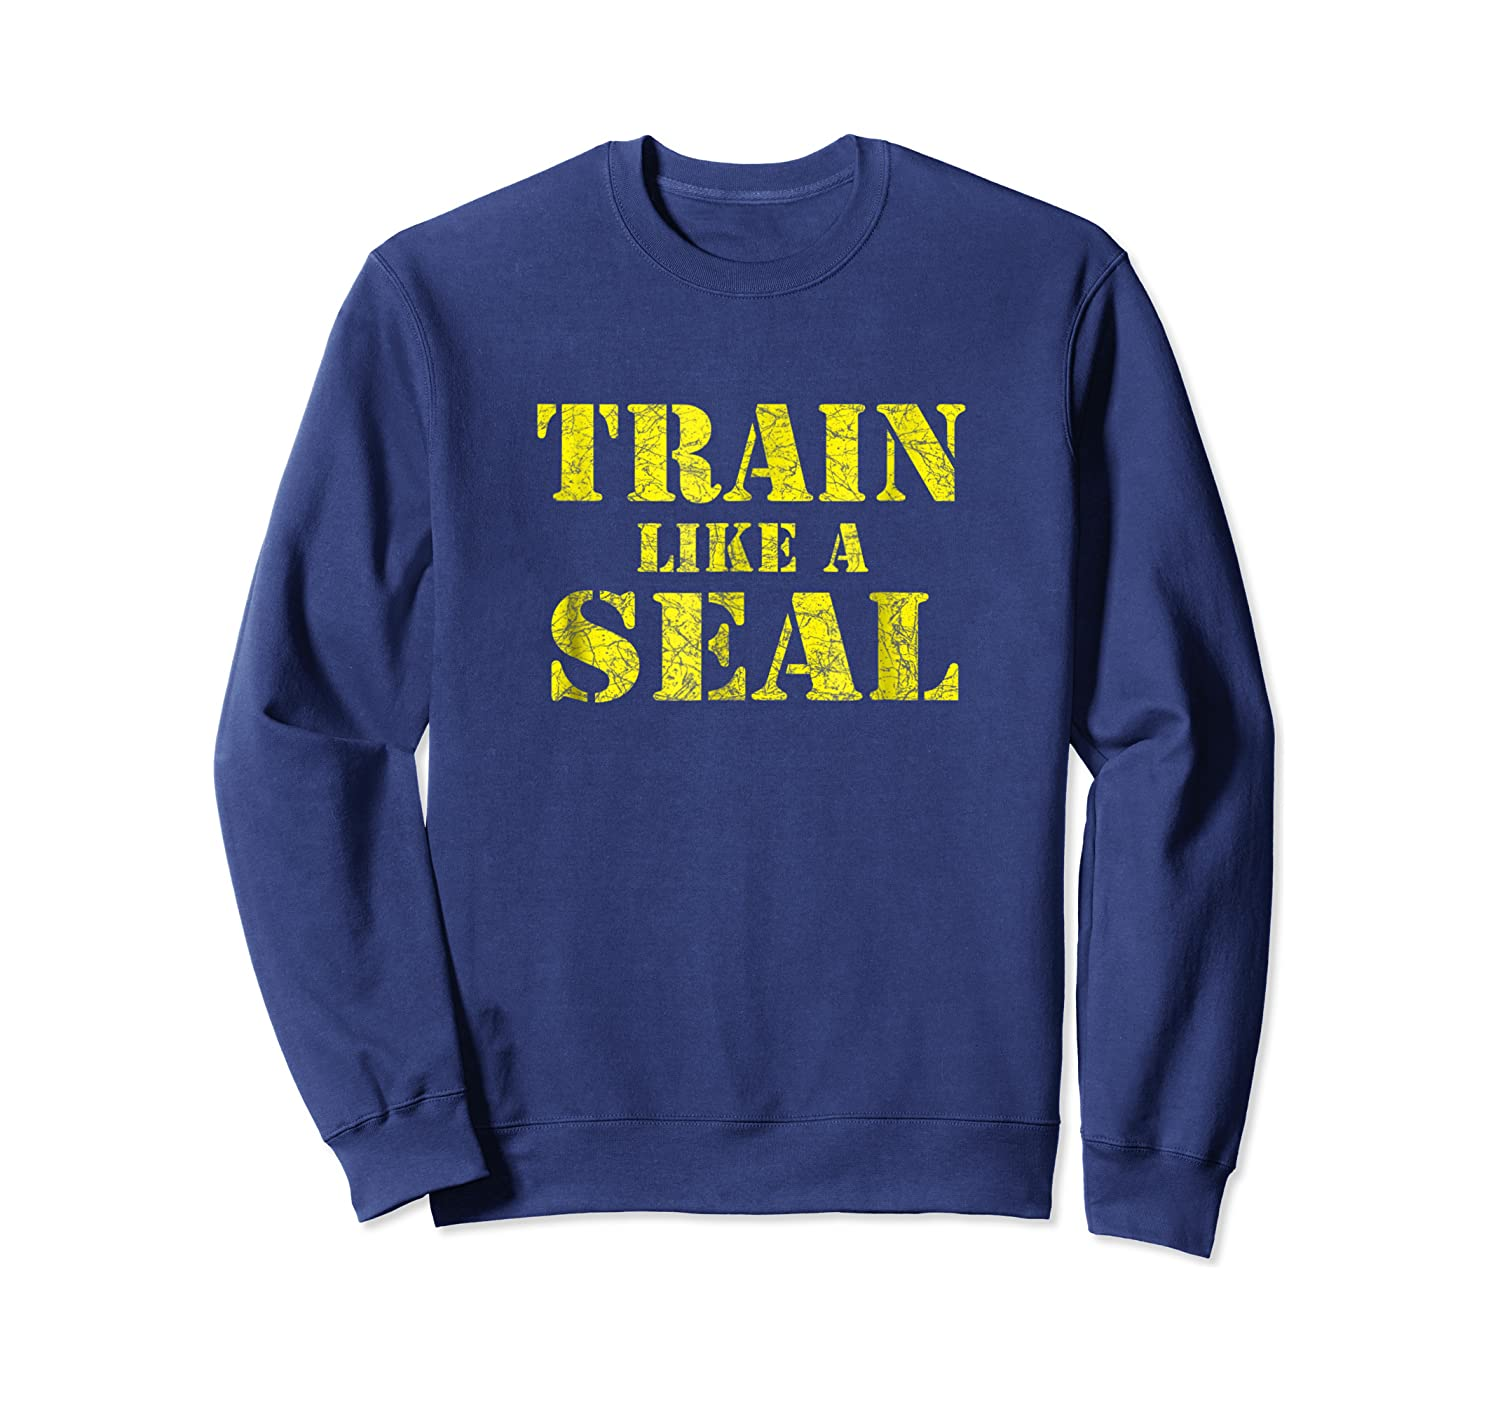 Like A Navy Seal Navy Seal Armed Forces Shirts Crewneck Sweater